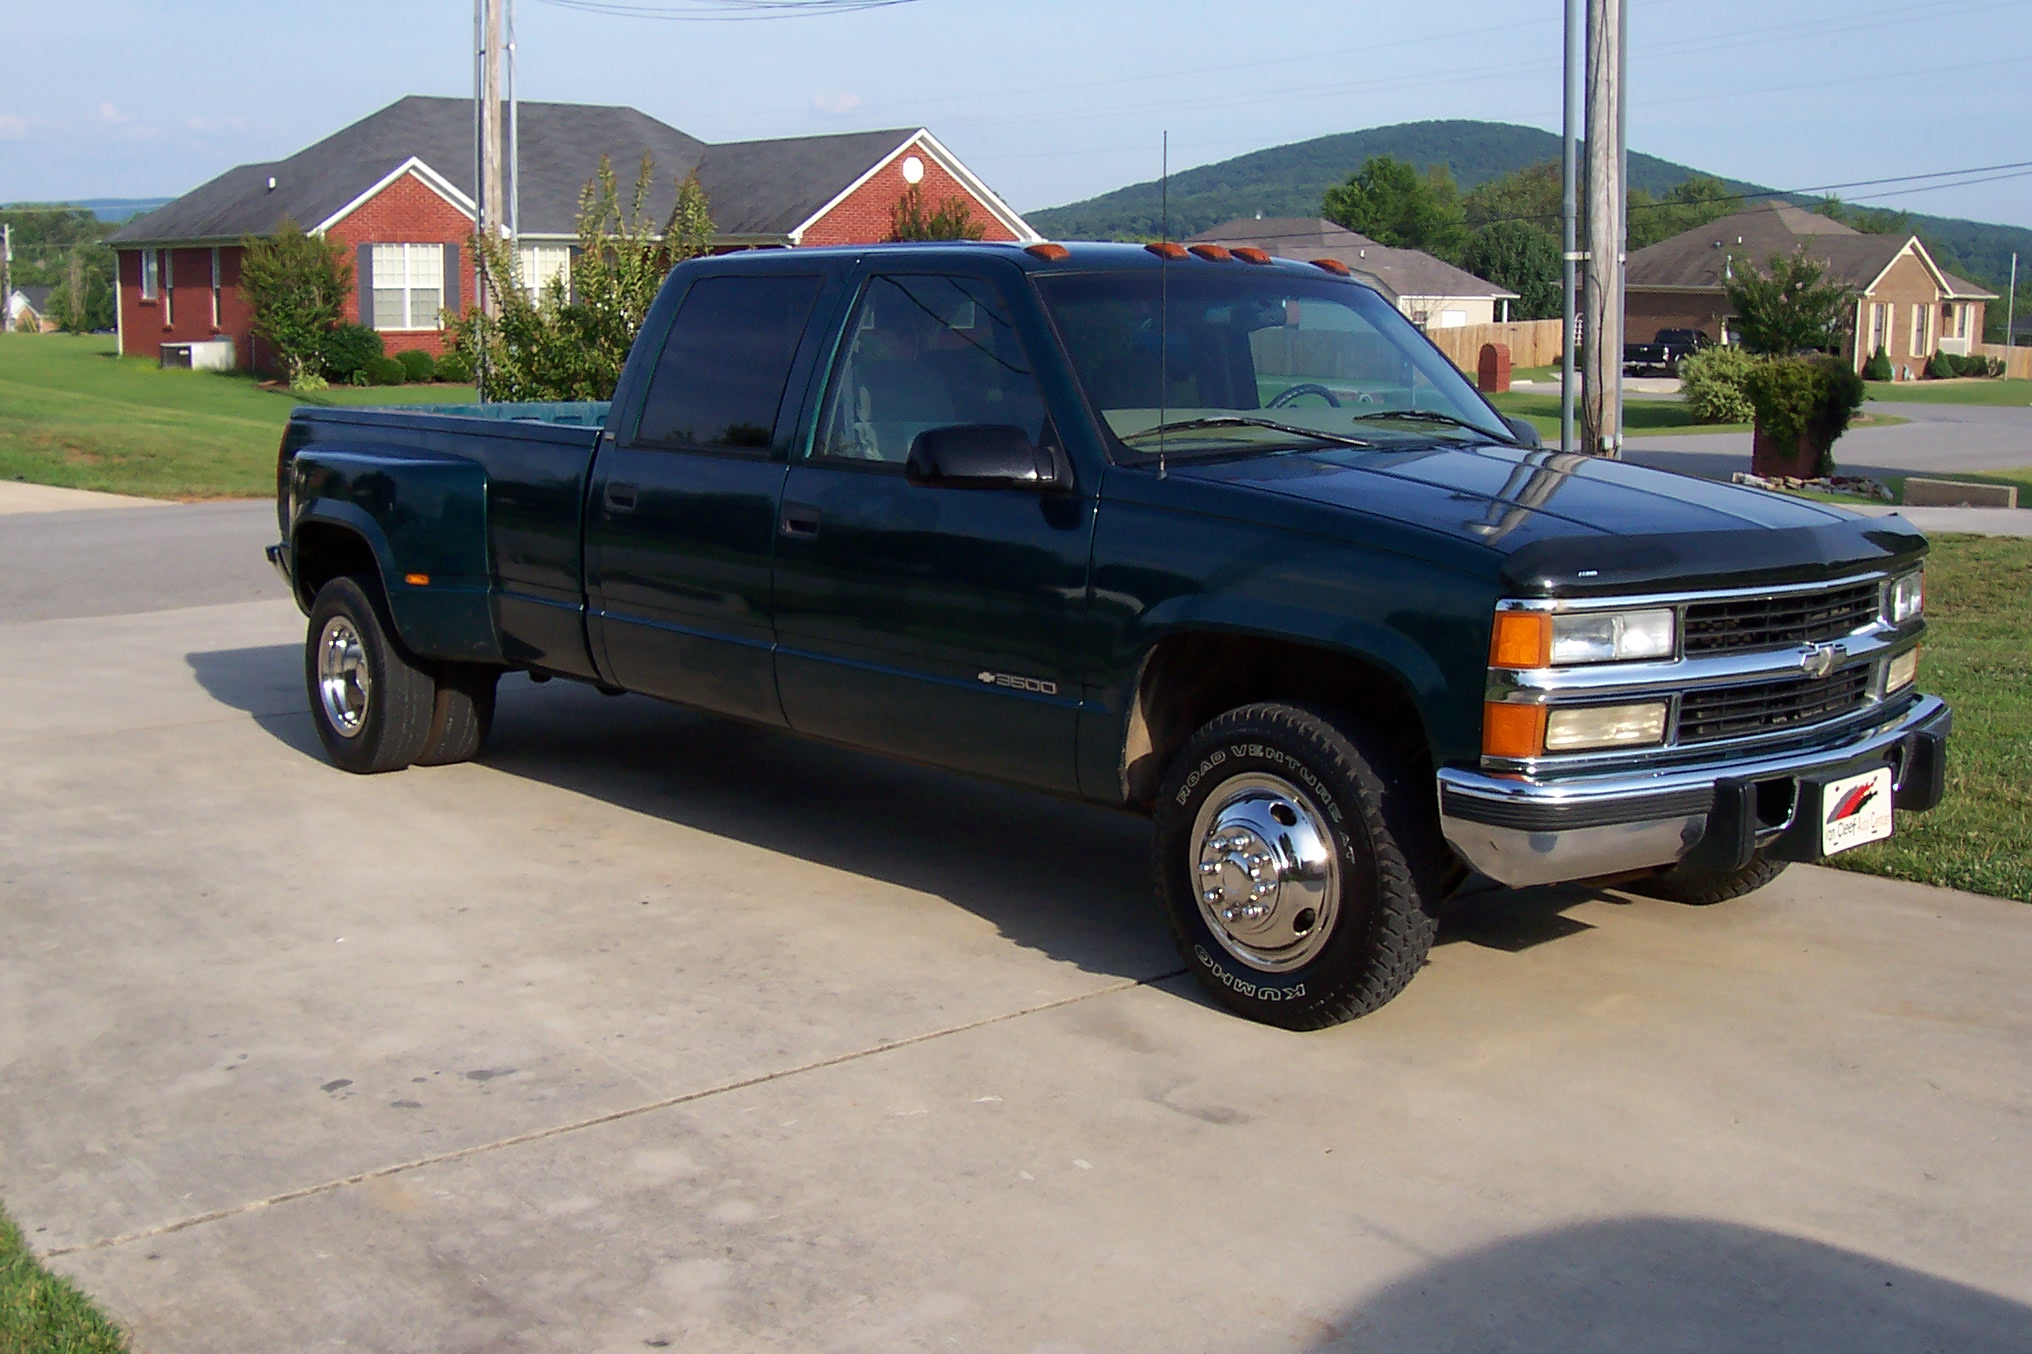 Forums / Classifieds / FS: 1997 Chevy 3500 Dually Turbo